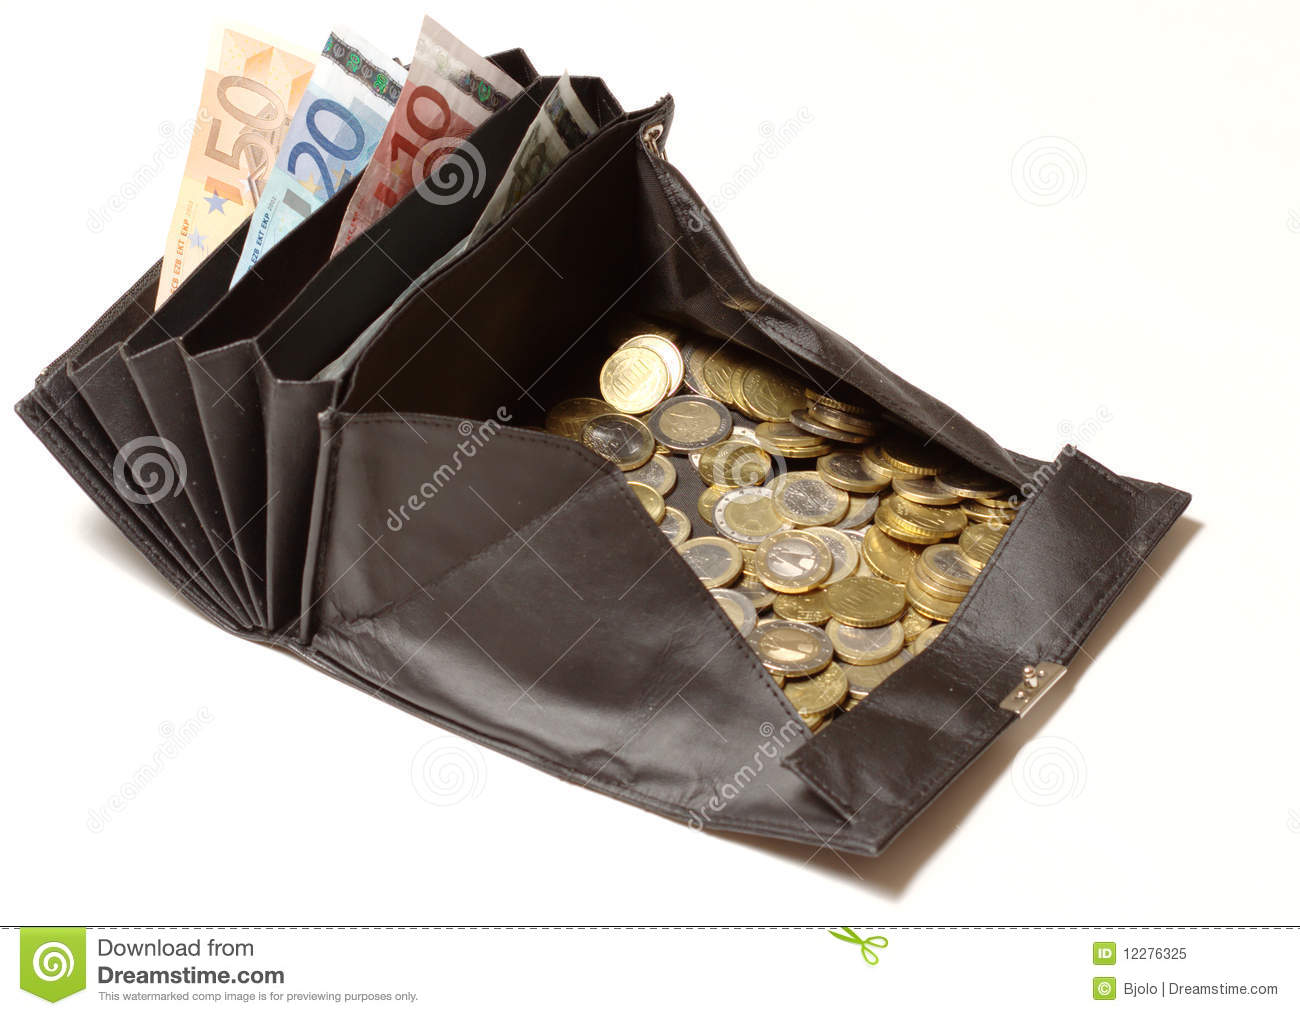 Change Purse With Euro Coins And Bills Stock Image Image Of Note Currency 12276325